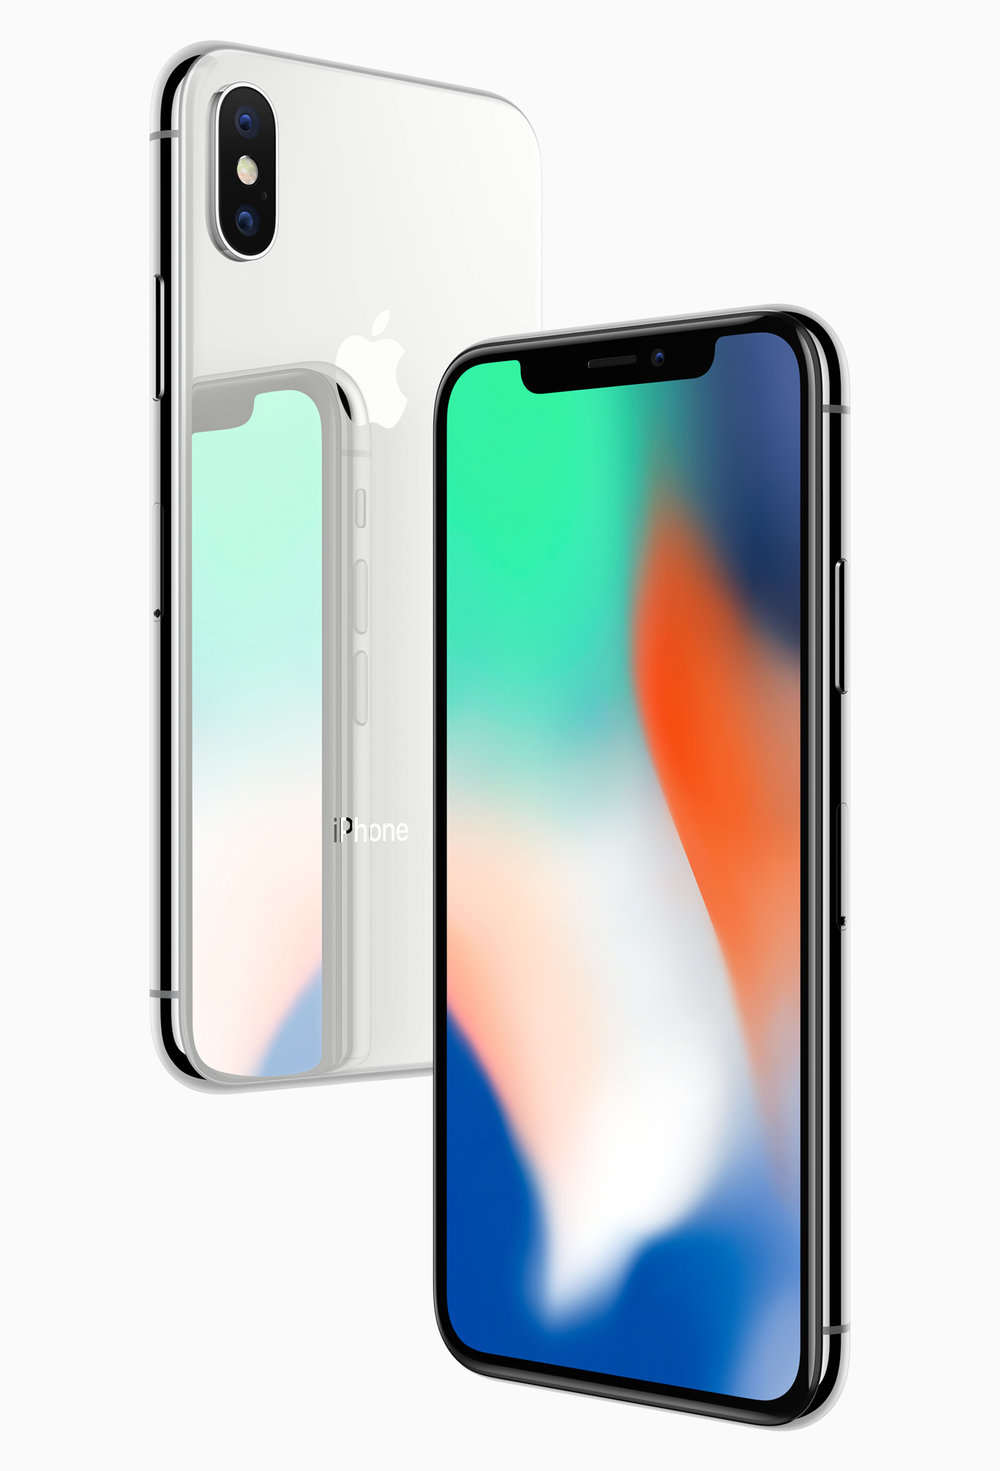 iPhoneX - It's here. And it's $999. All the details in today's episode.Source: Apple.com